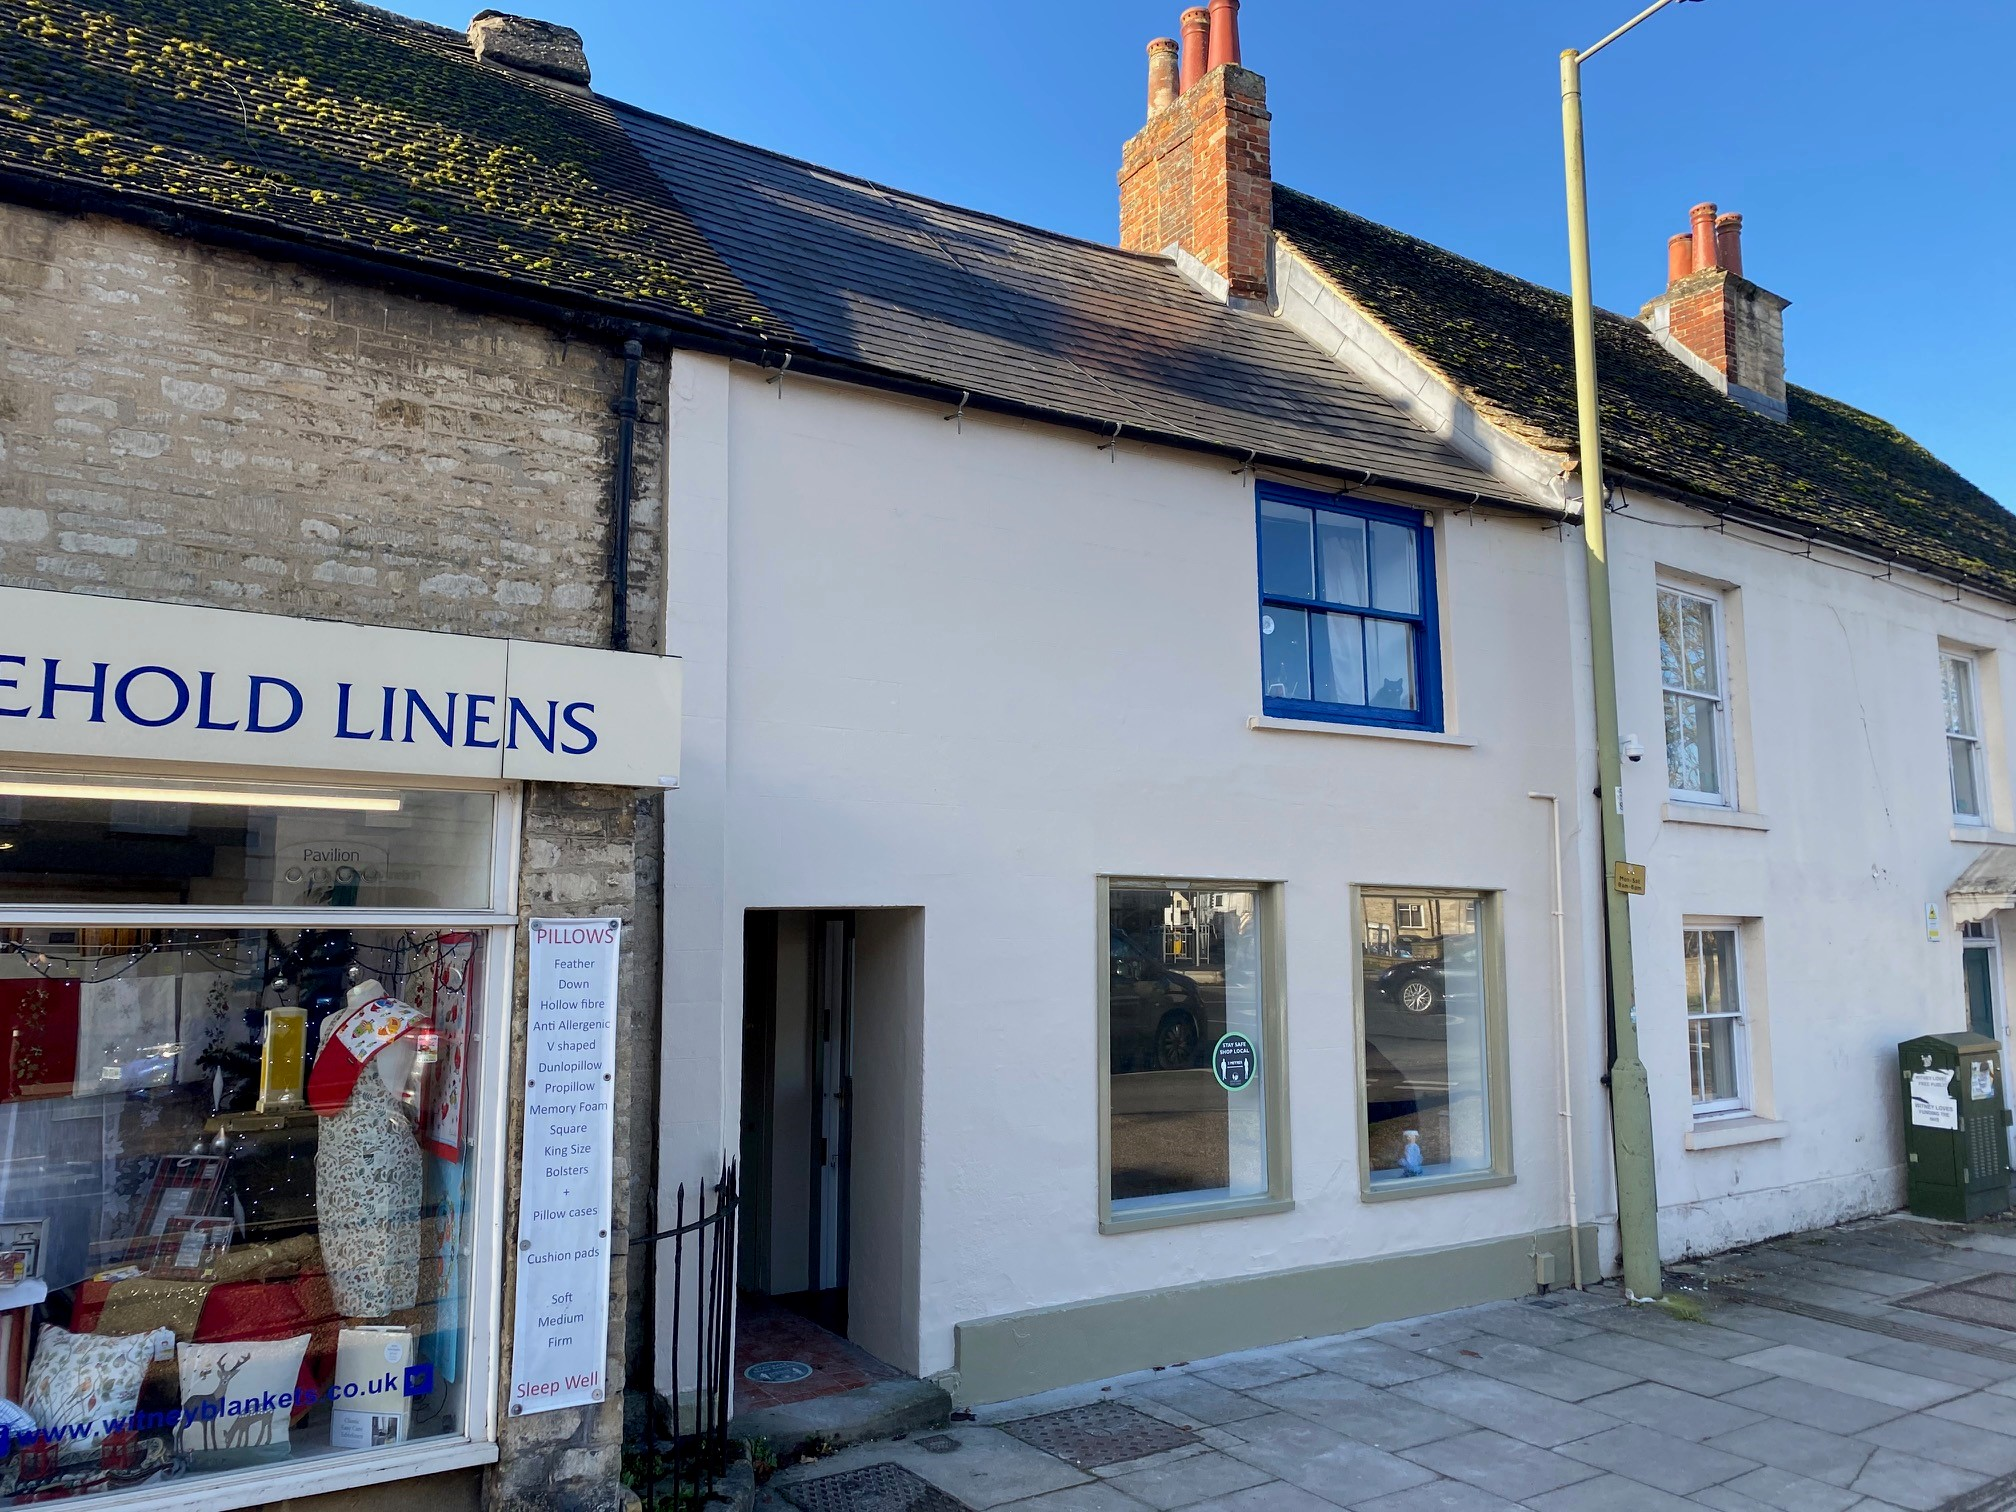 Print company ready for High Street expansion in Witney, Oxfordshire